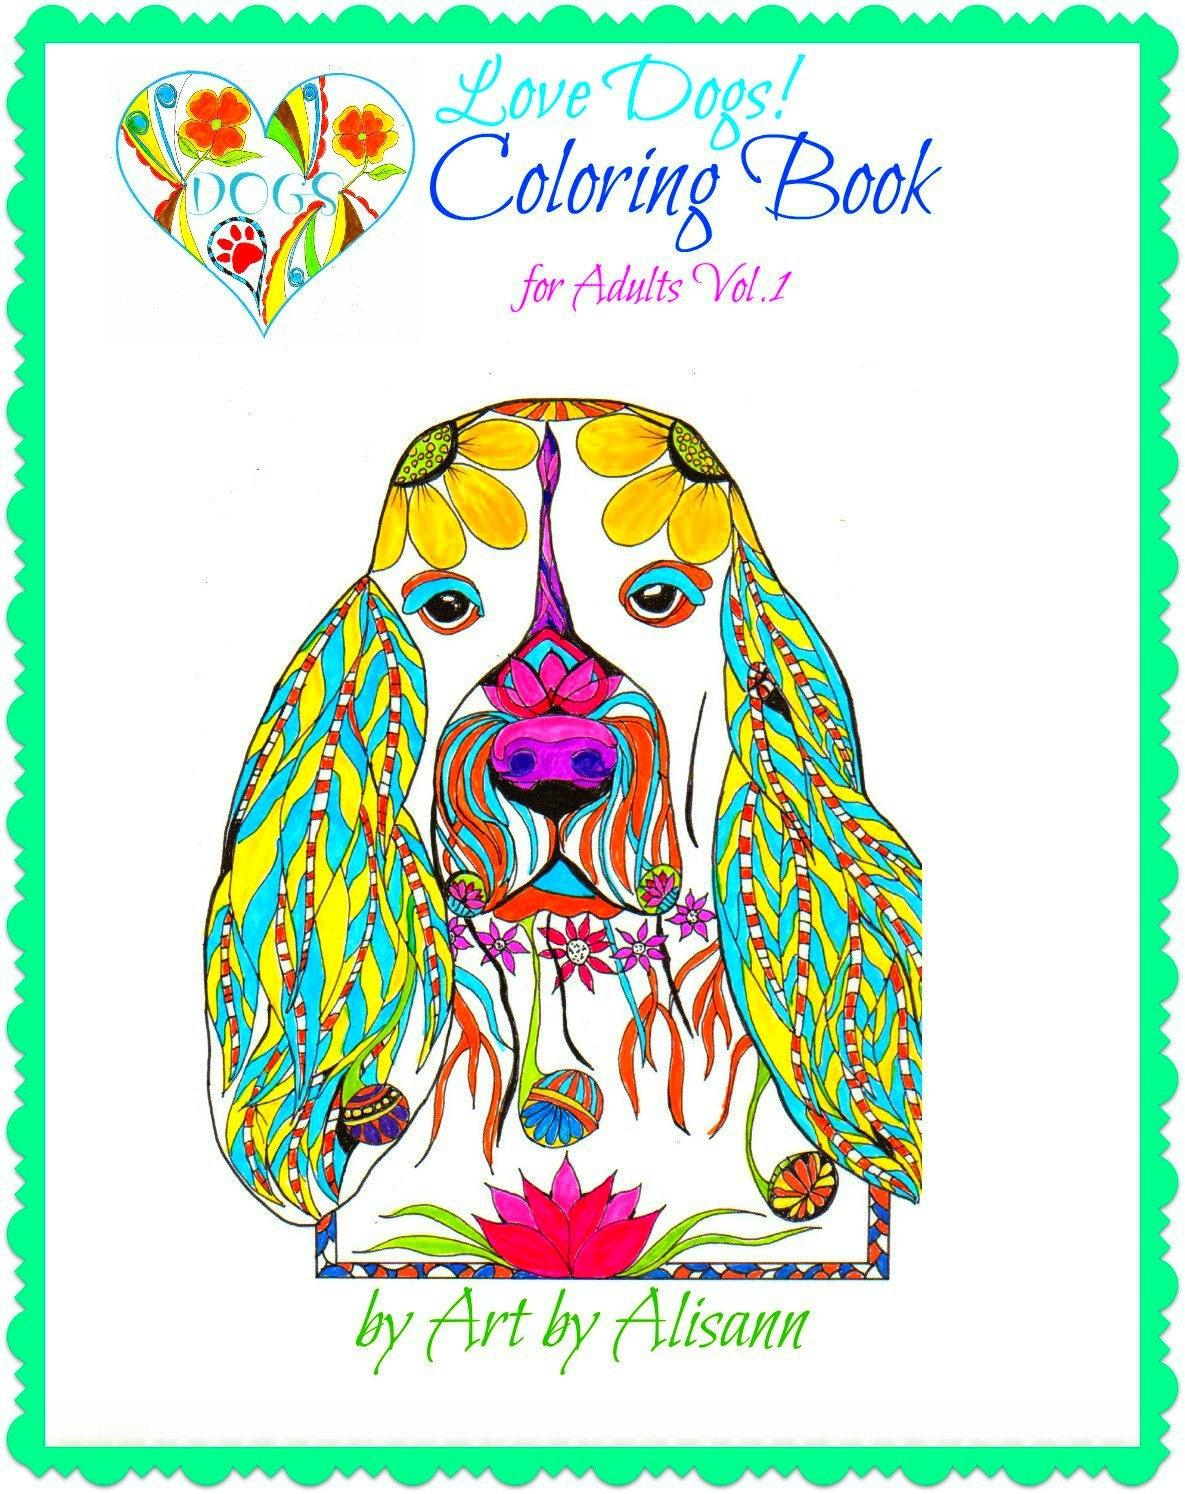 Swear word coloring book sarah bigwood - Love Dogs Coloring Book For Adults Vol 1 Multiple Dogs Bound Or Unbound Book 25 Coloring Pages Single Sided Pages